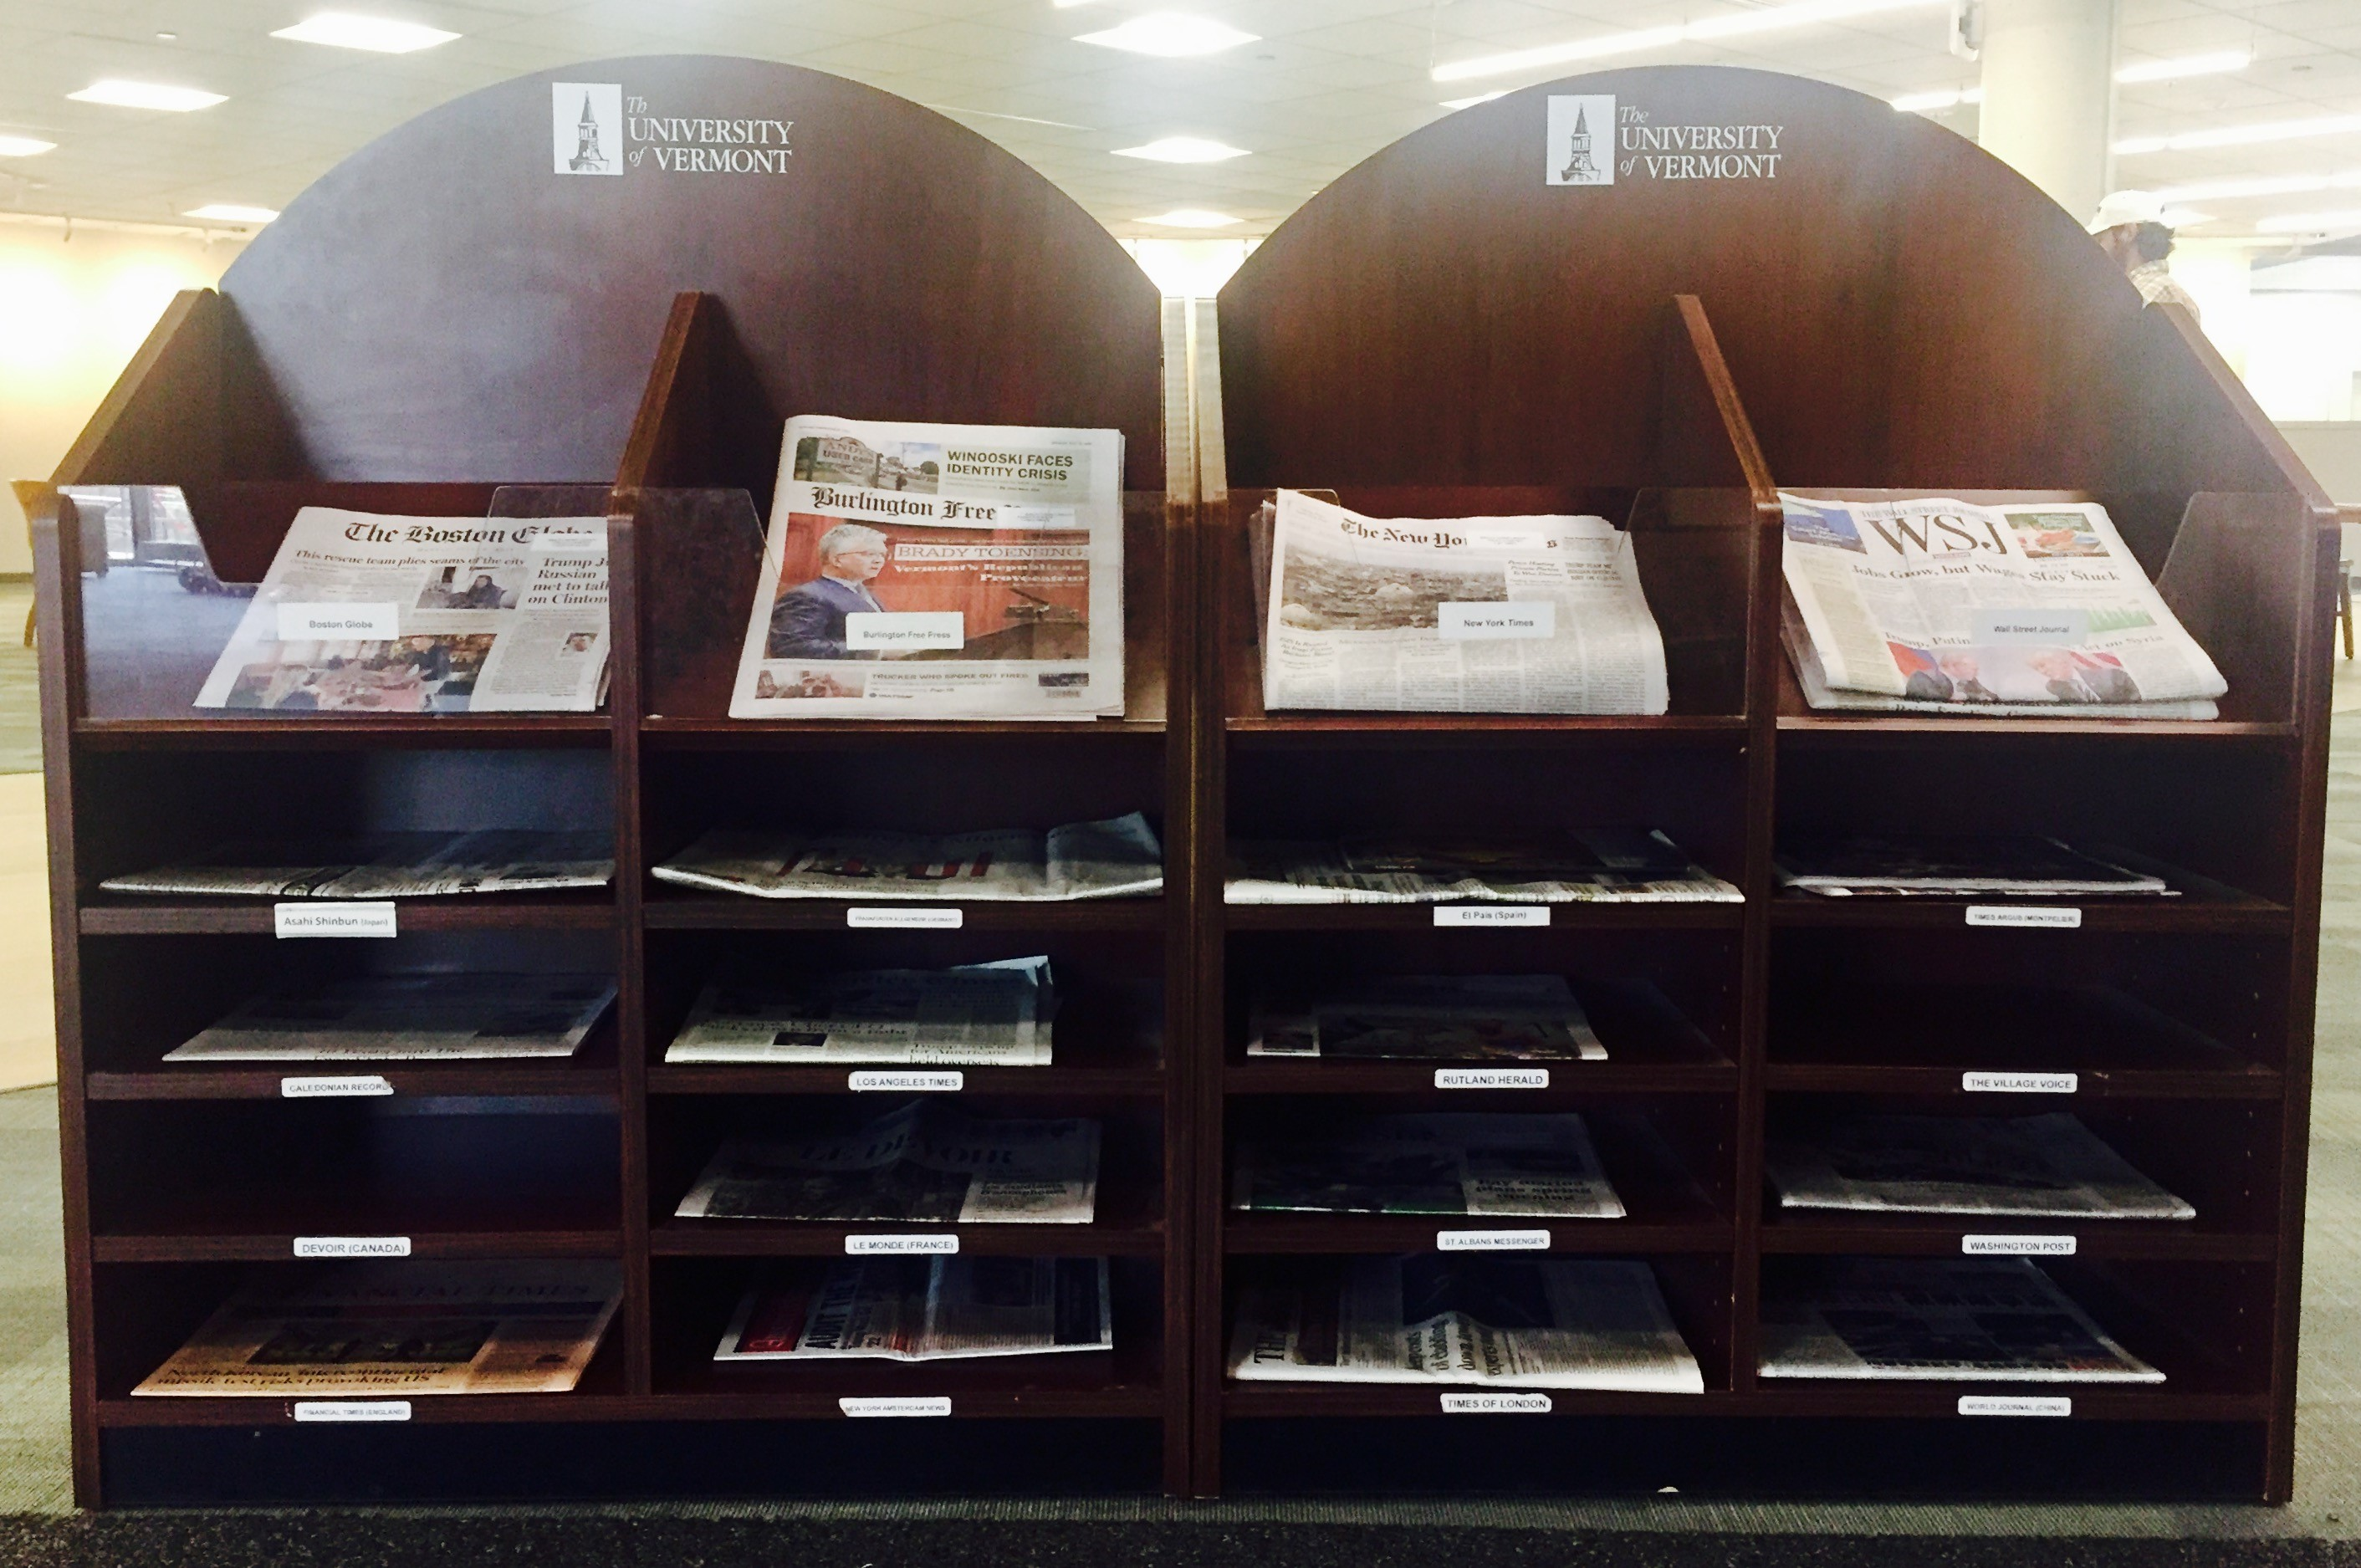 The Recent Newspaper display, is located near the McCrorey Gallery